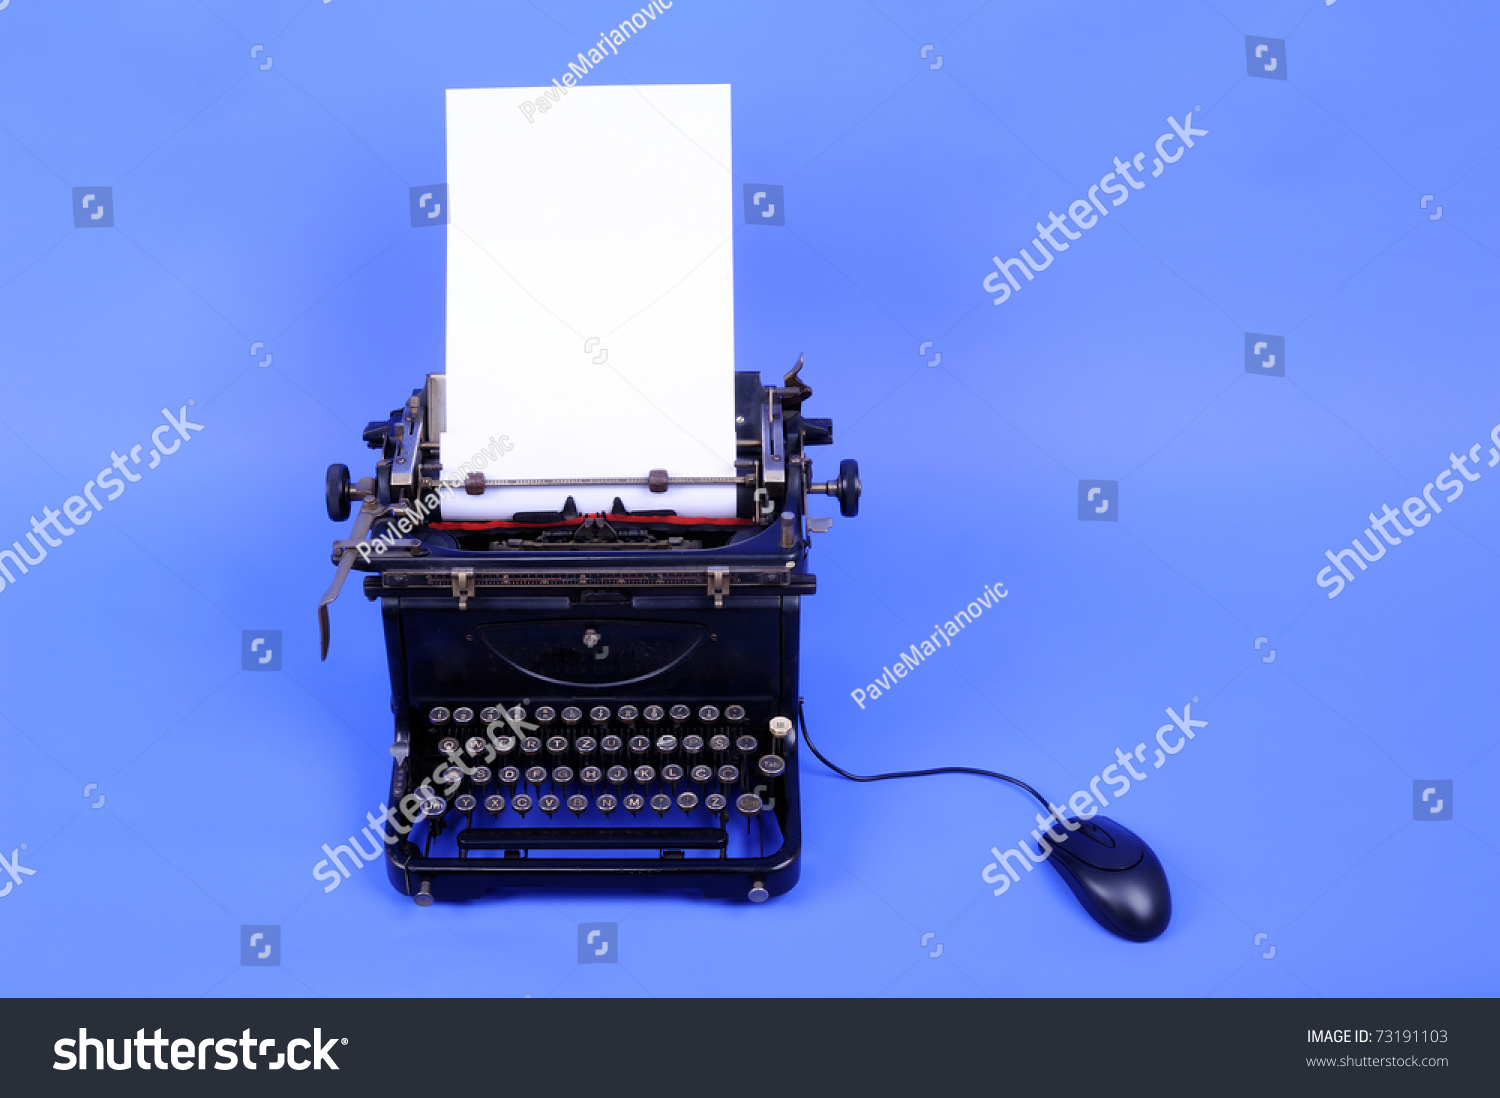 typewriter vs computer essay Just like a real manual typewriter the whole purpose of this program is to replicate features of a manual typewriter that computer programs such as word.